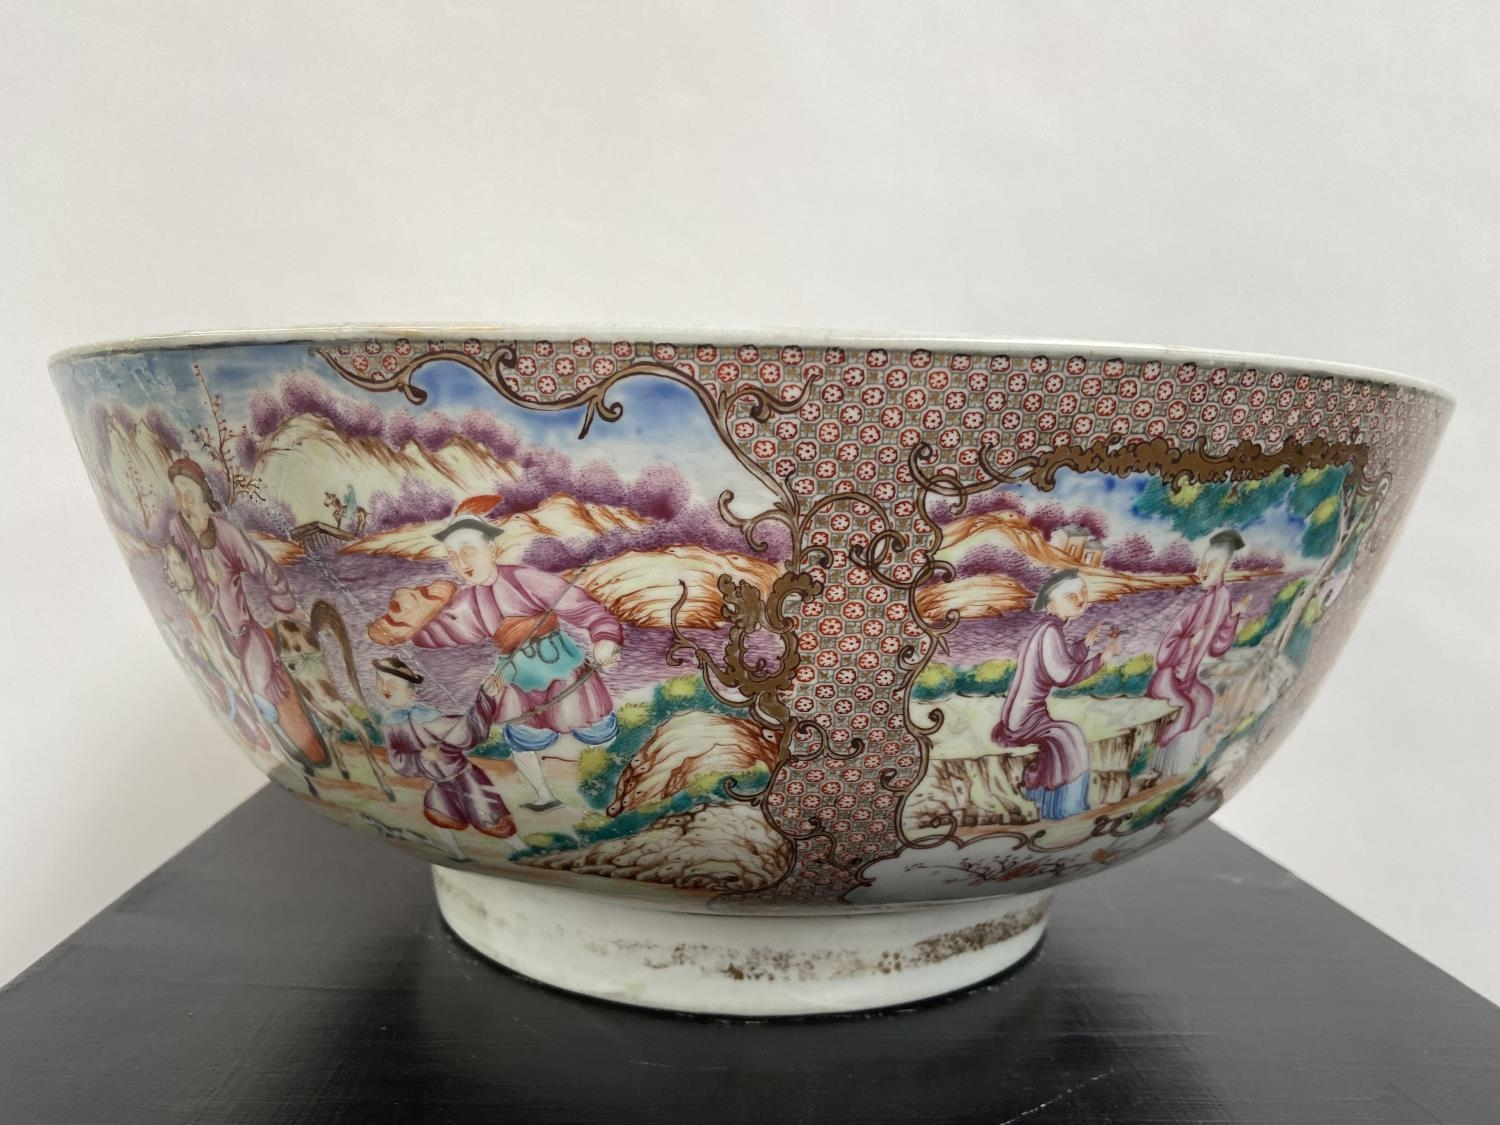 A LARGE 19TH CENTURY CHINESE HAND PAINTED BOWL. EXTERIOR DEPICTS CHINESE HUNTING SCENE PANELS. THE - Image 30 of 39